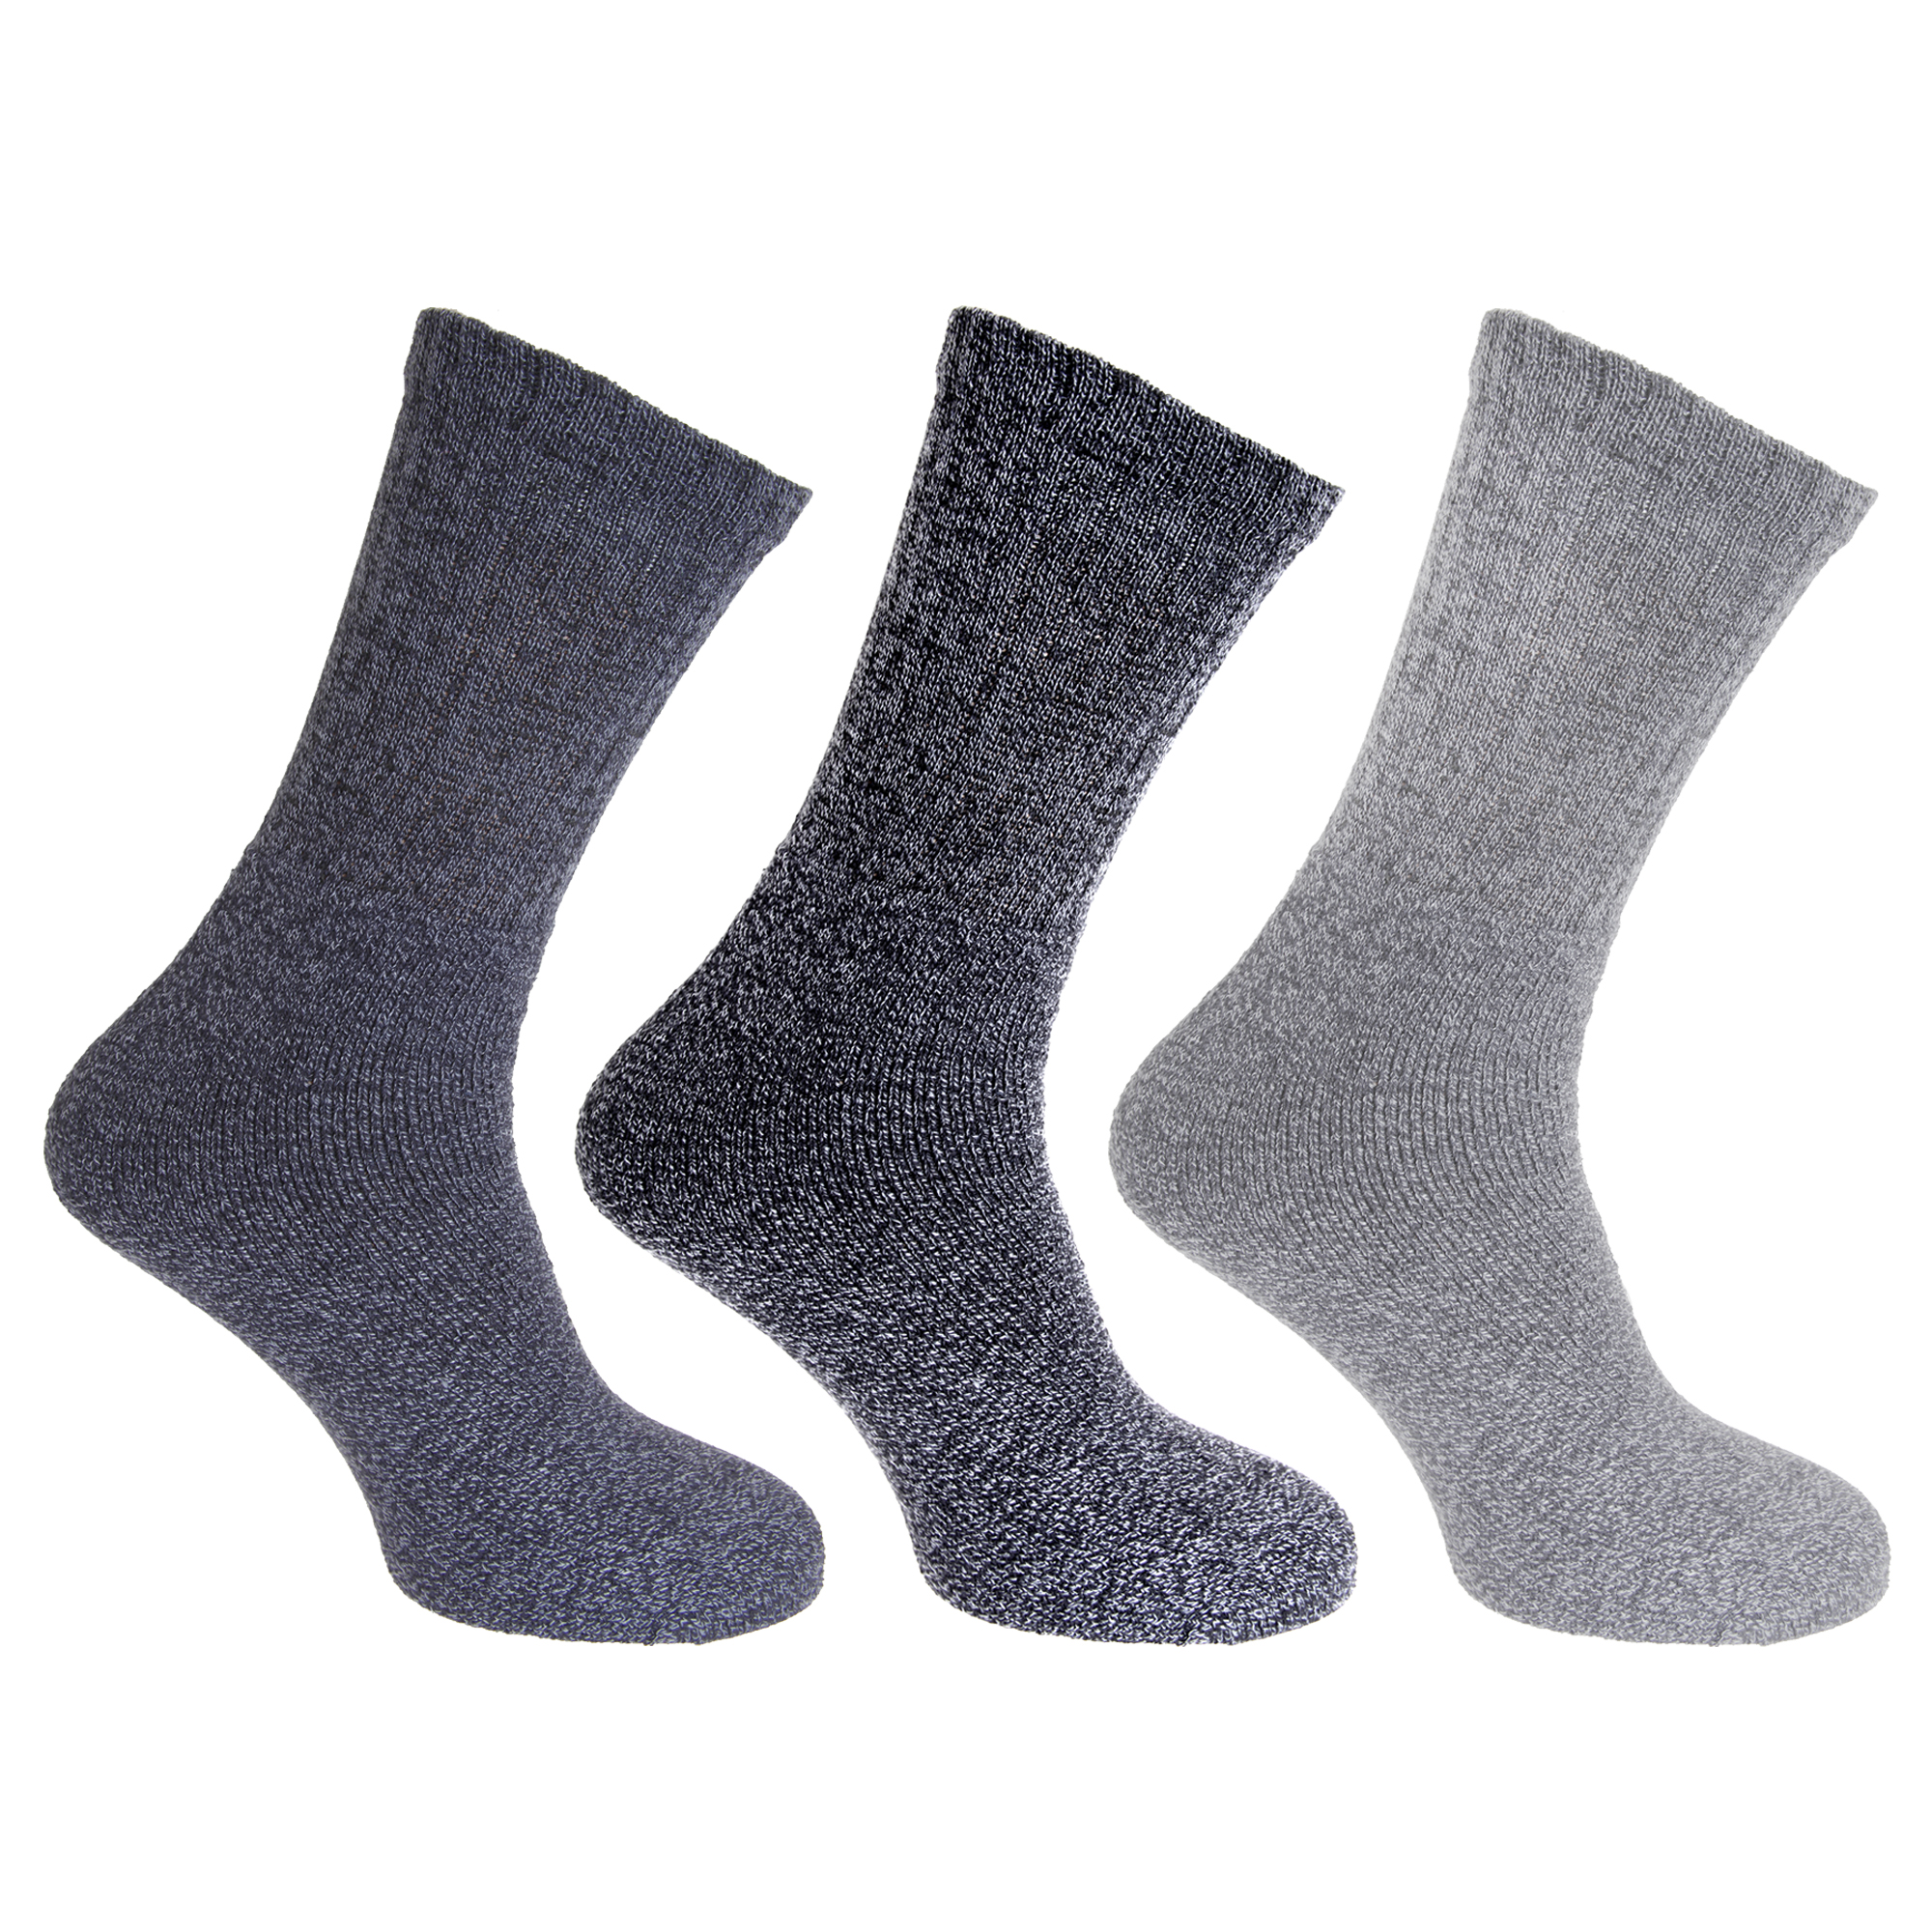 Mens-Cotton-Rich-Knit-Look-Boot-Socks-3-Pairs-MB537